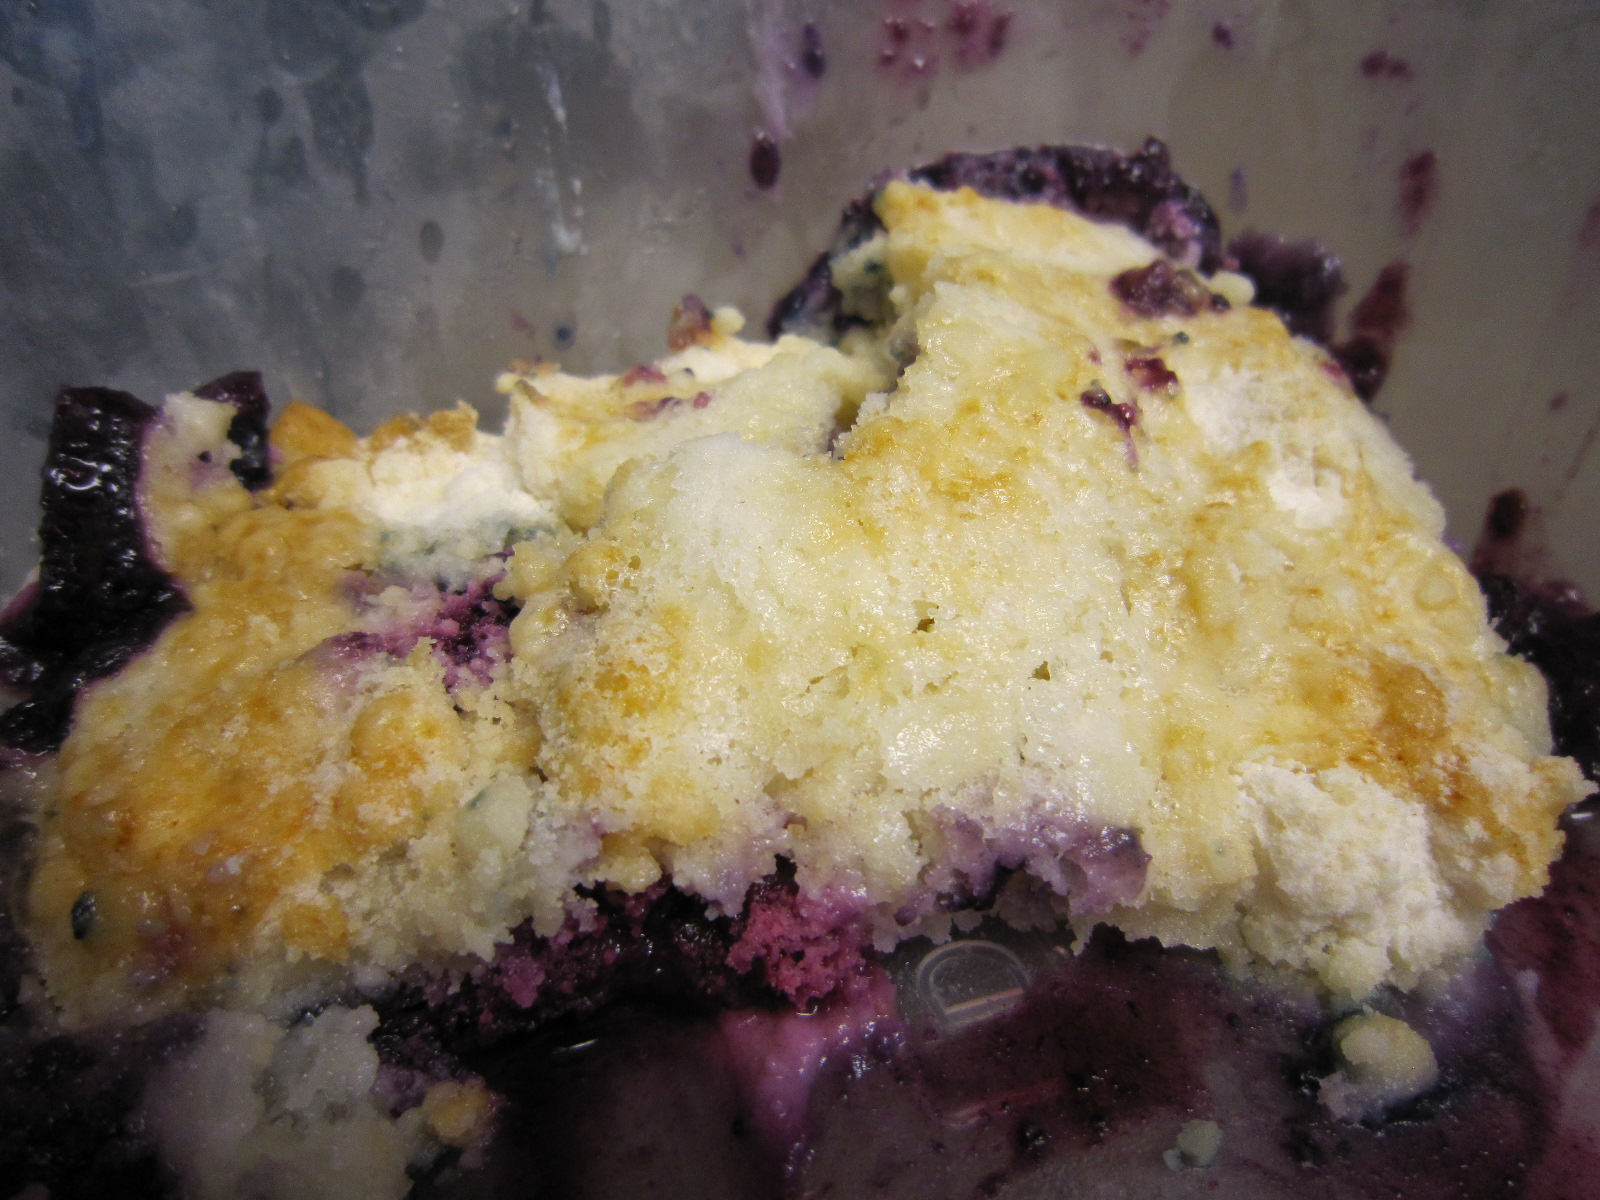 I Ate My Berry Cobbler With A 1 2 Cup Of No Sugar Added Blue Bell Country Vanilla Ice Cream It Was So Good